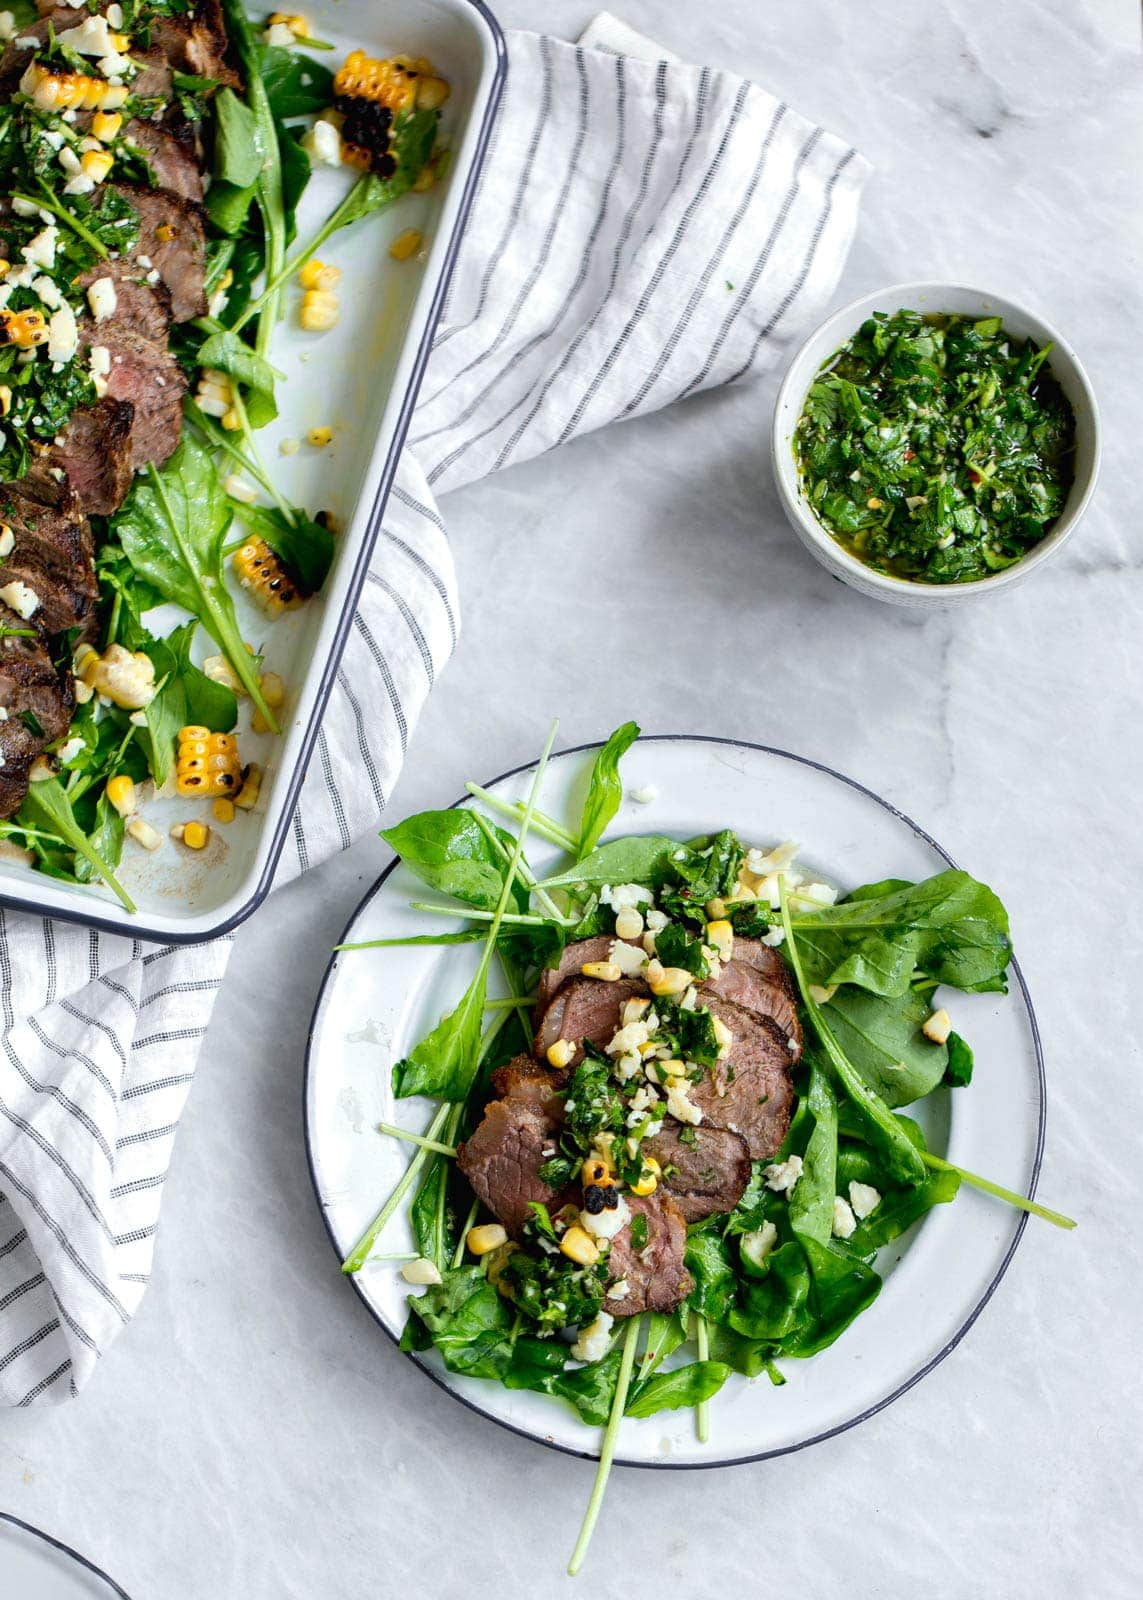 An epic Chimichurri Steak Salad with charred corn, cotija cheese, arugula, and a homemade chimichurri sauce. Perfect for summer nights!